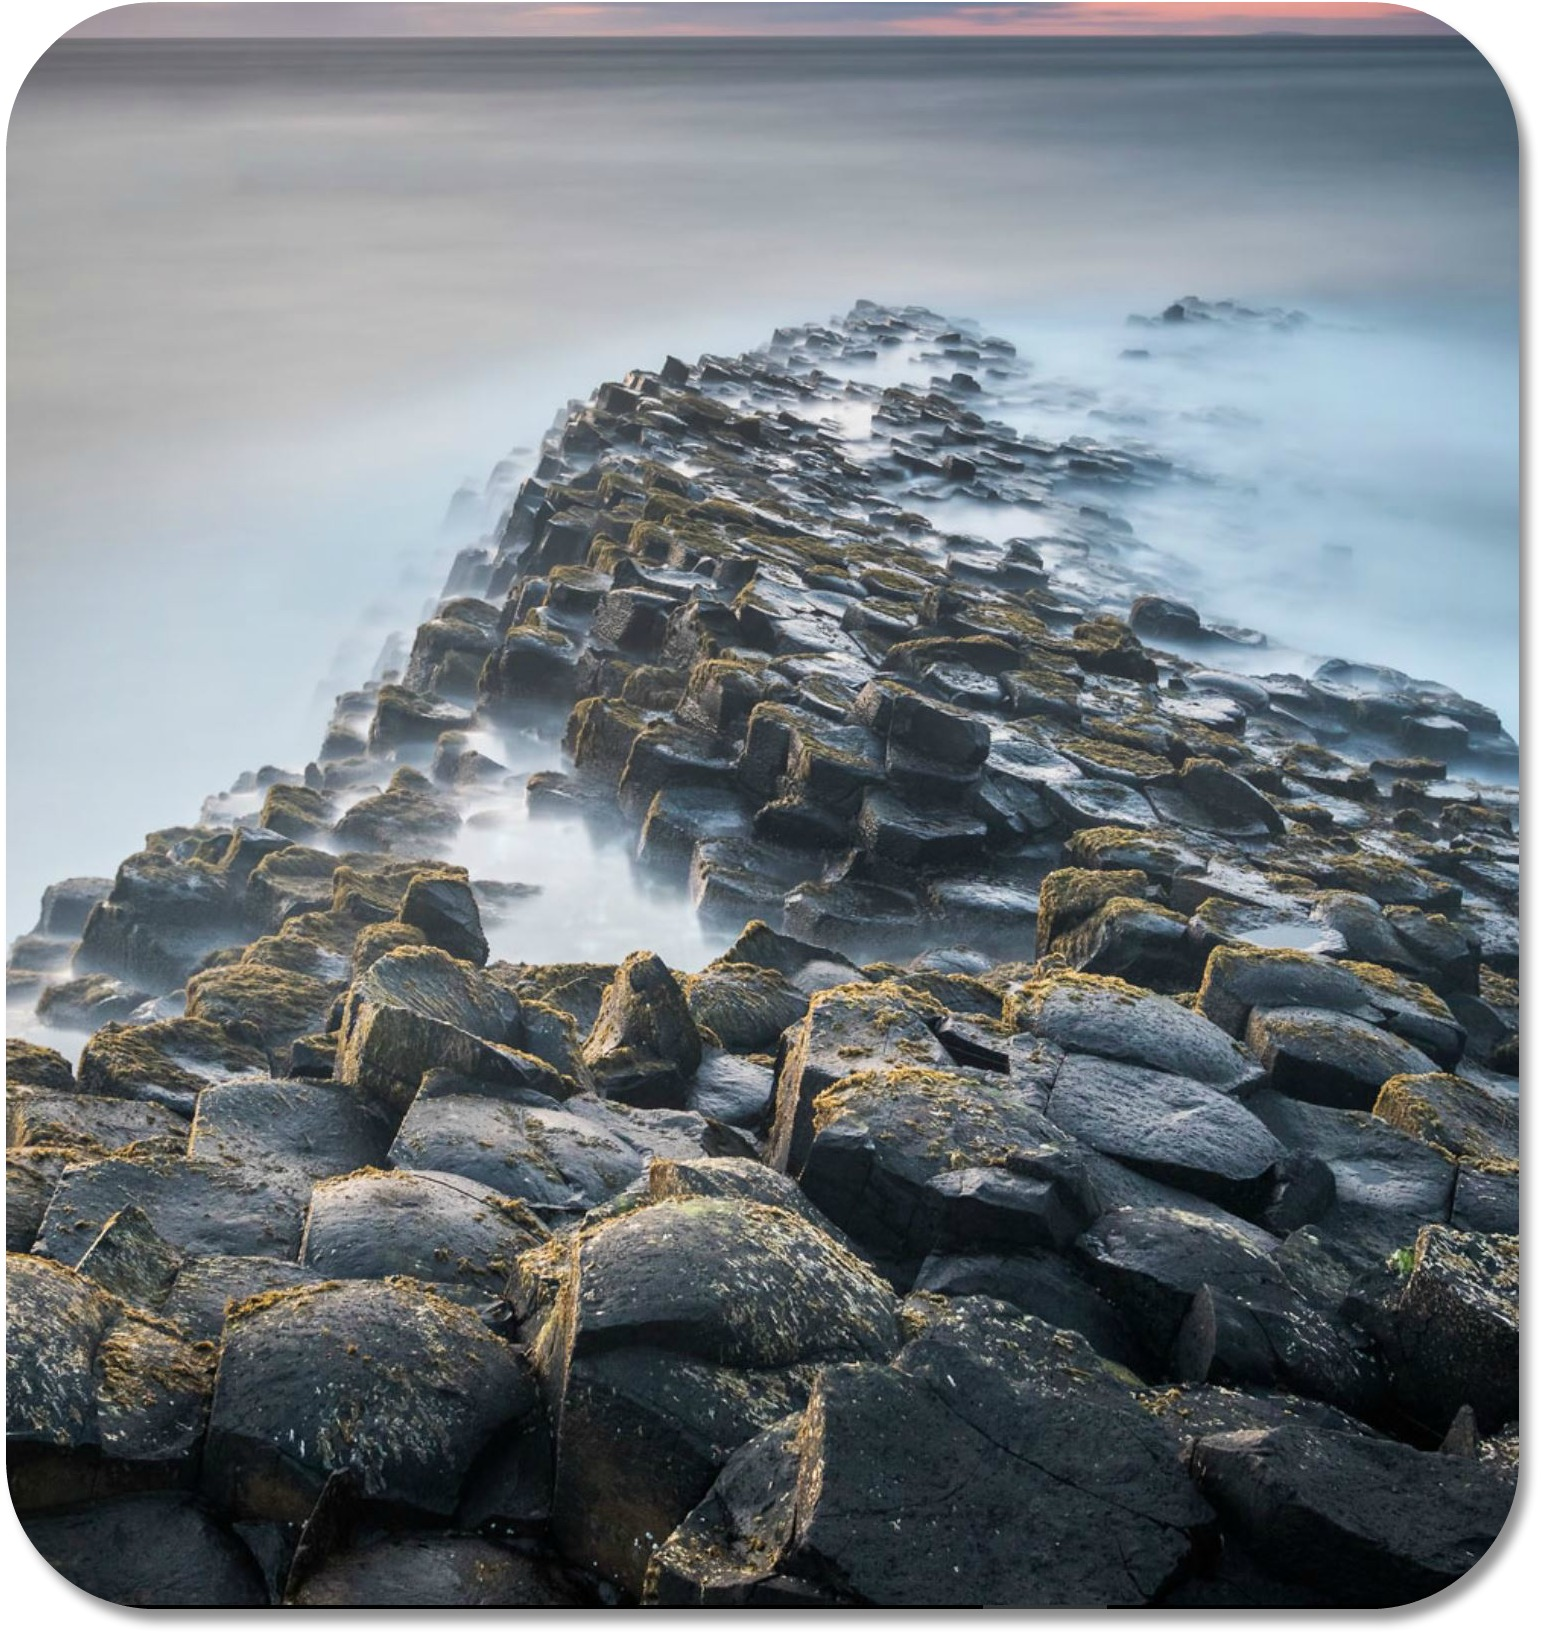 Picture of Ireland - Giant's Causeway. Photographer: Stephen Wallace.